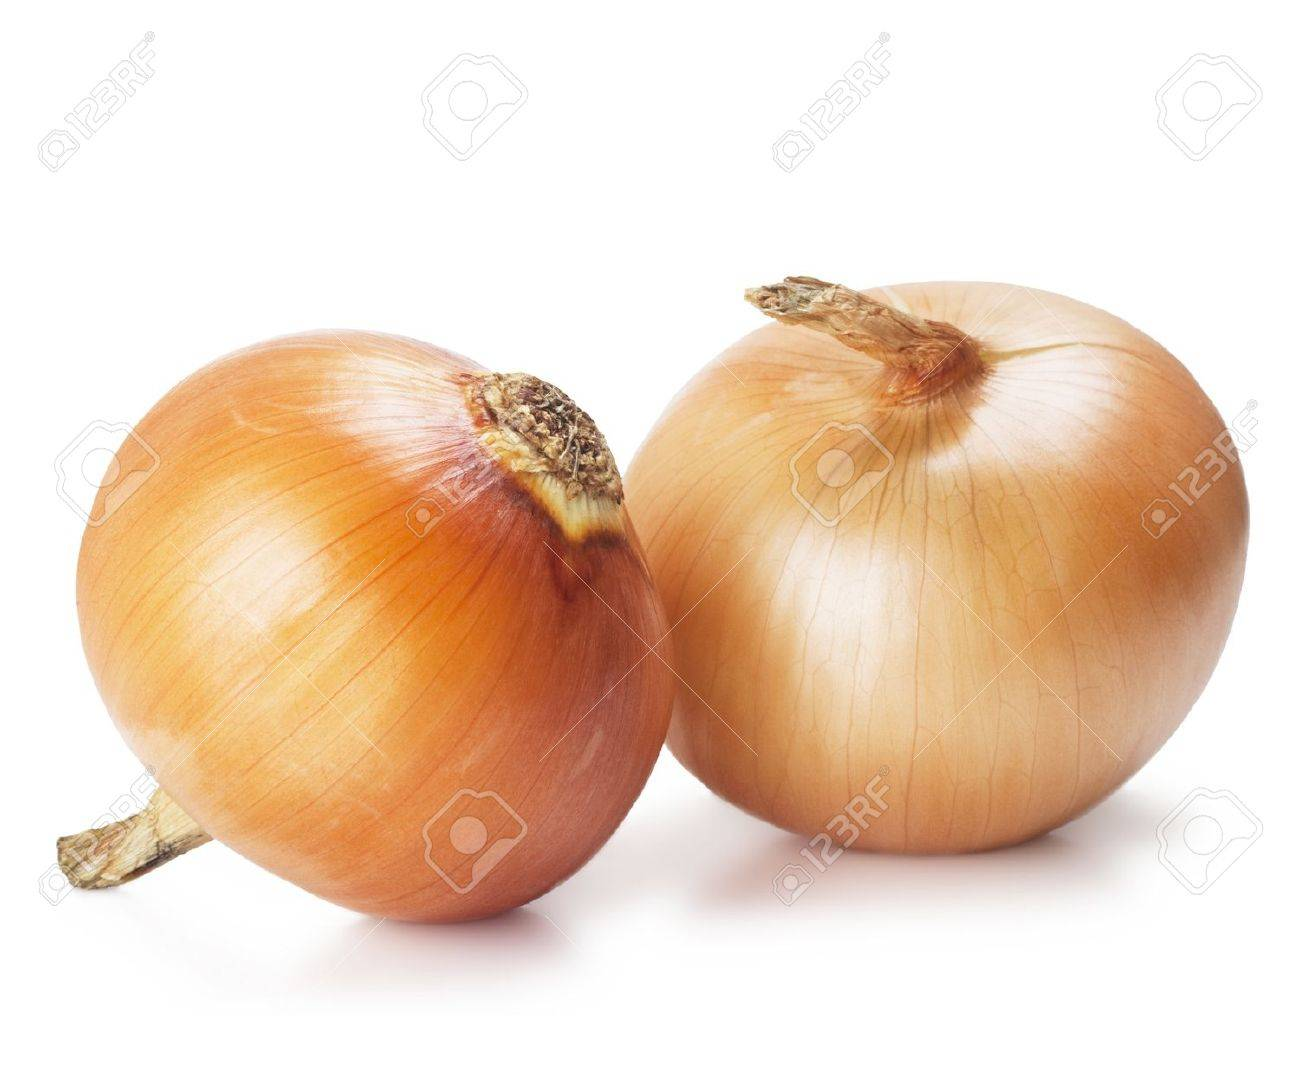 Ripe onions on a white background Stock Photo - 12363860